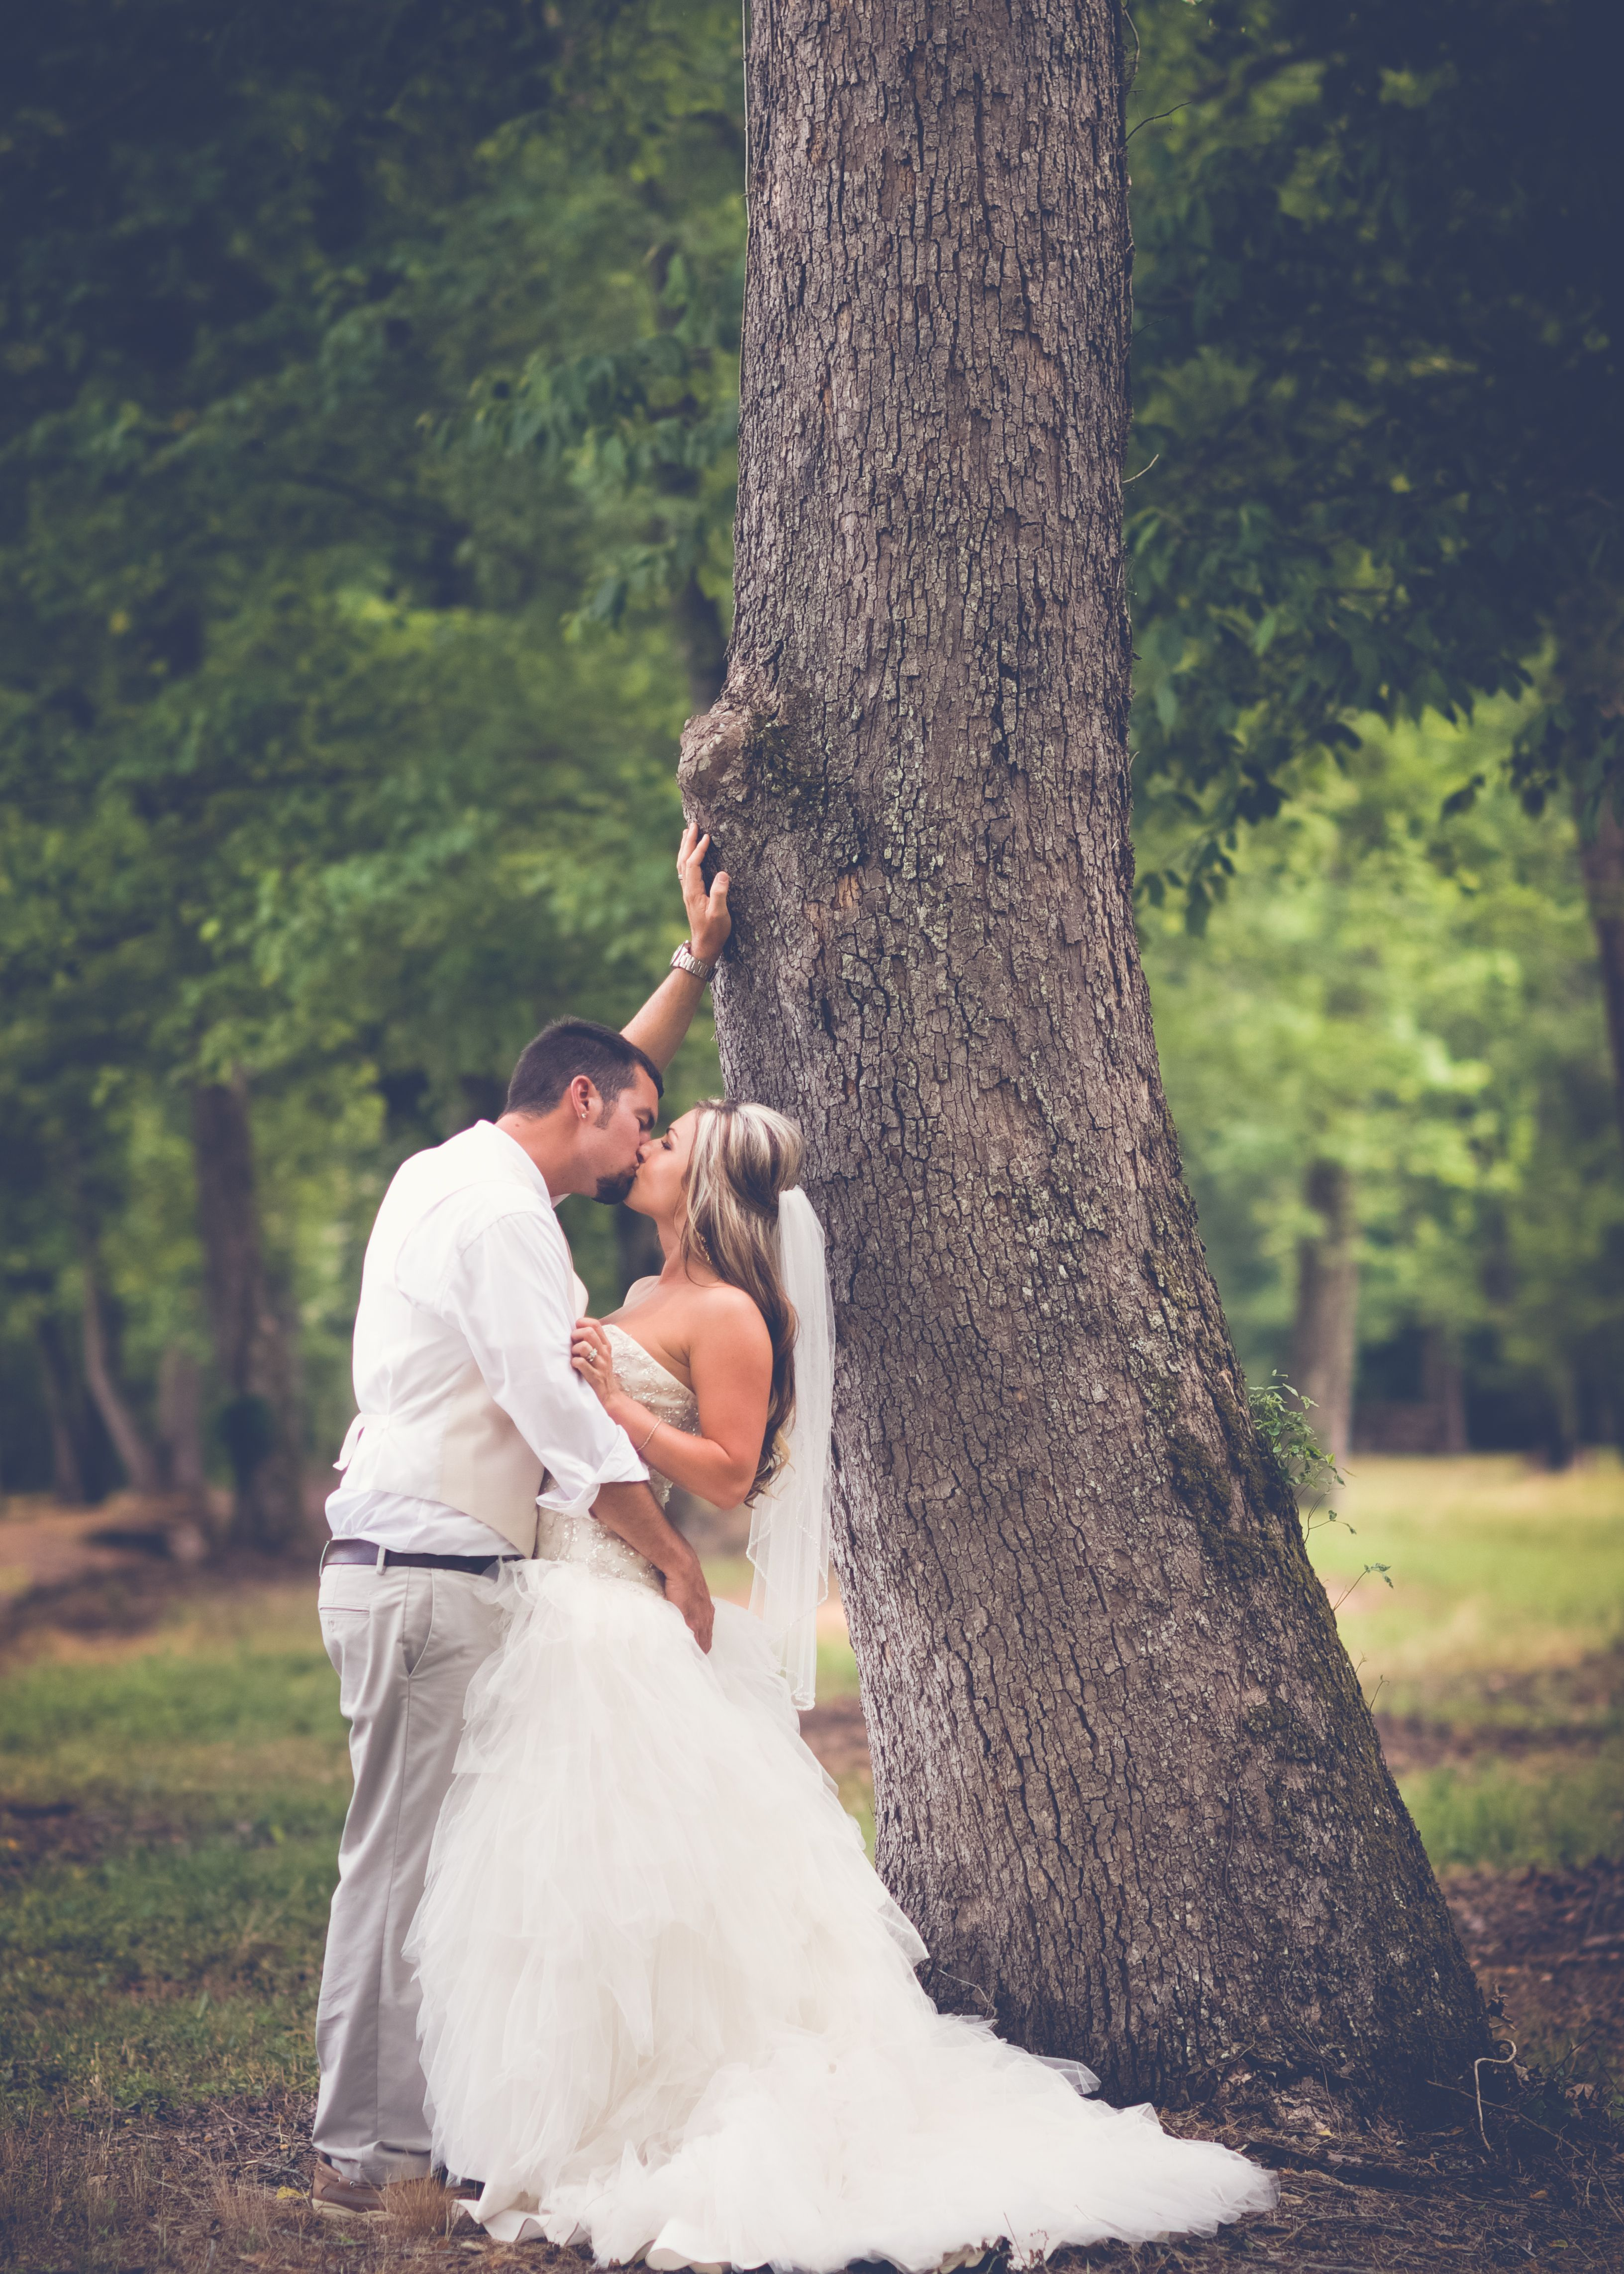 #dawsonvillega #wedding #brideandgroom #married #mrandmrs #kiss #love #springwedding #summerwedding #justinlovesrandi